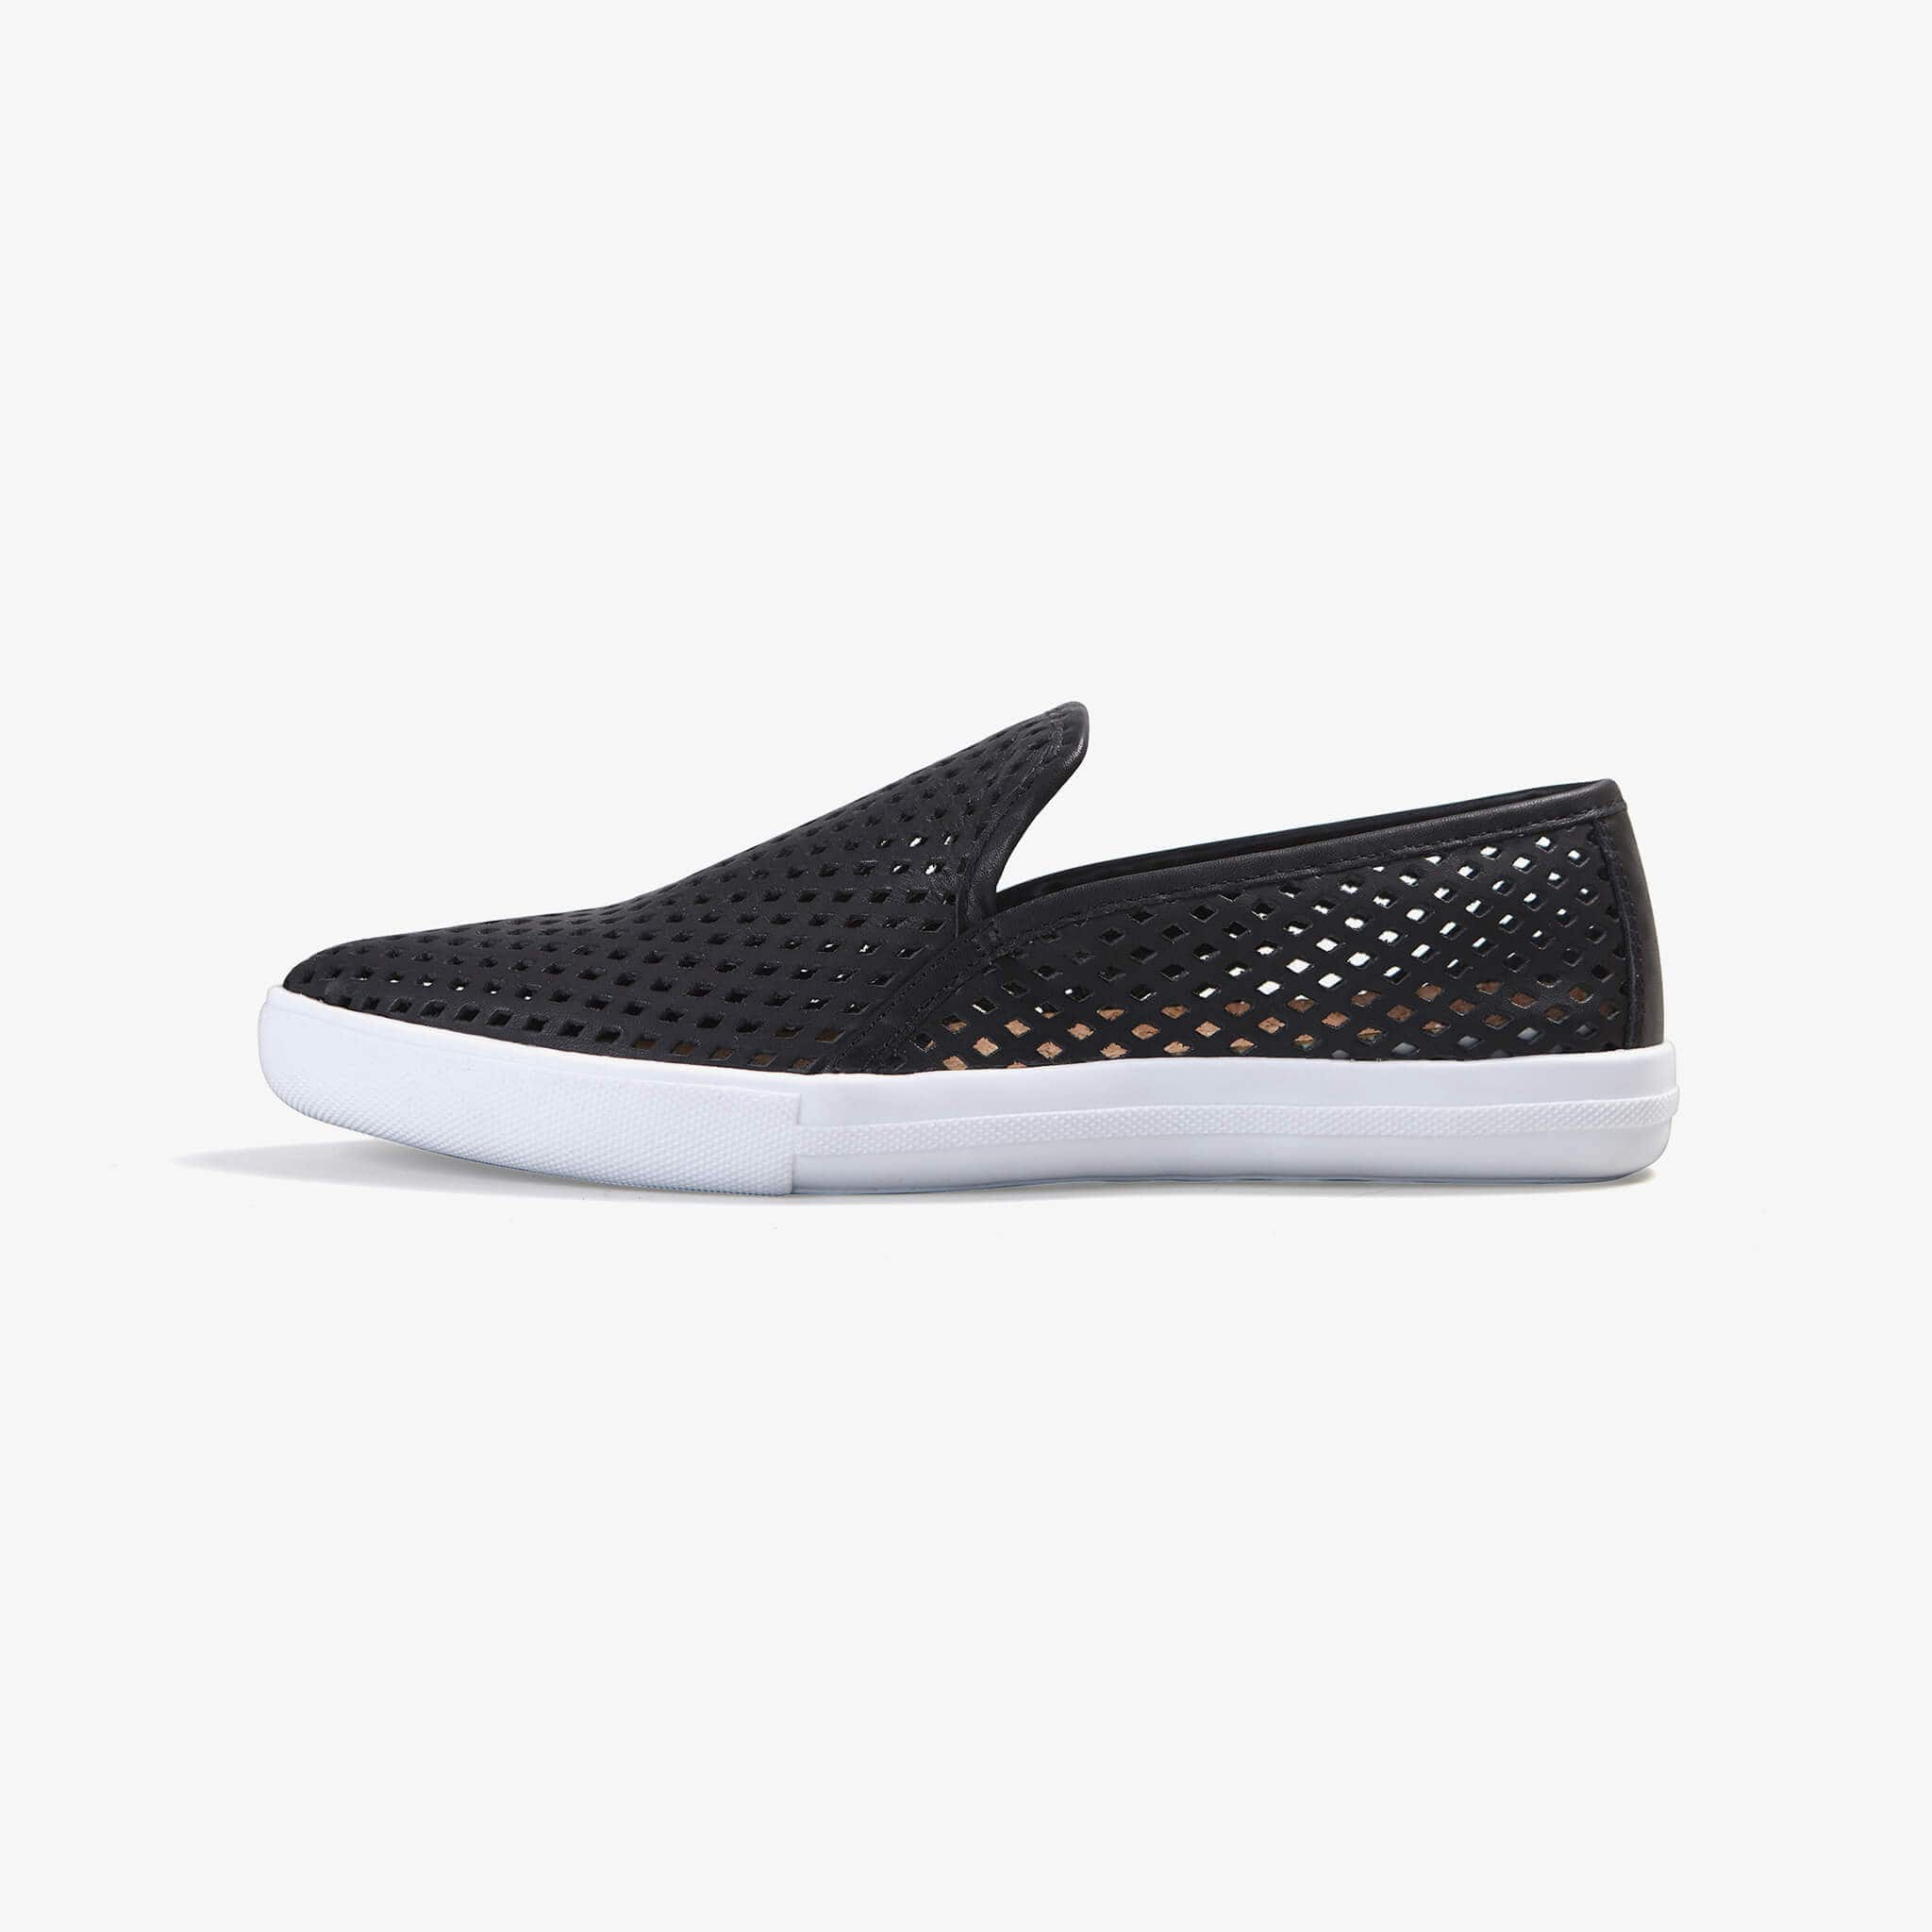 Jibs Slim Jet Black Slip On Sneaker Flat Shoe Side